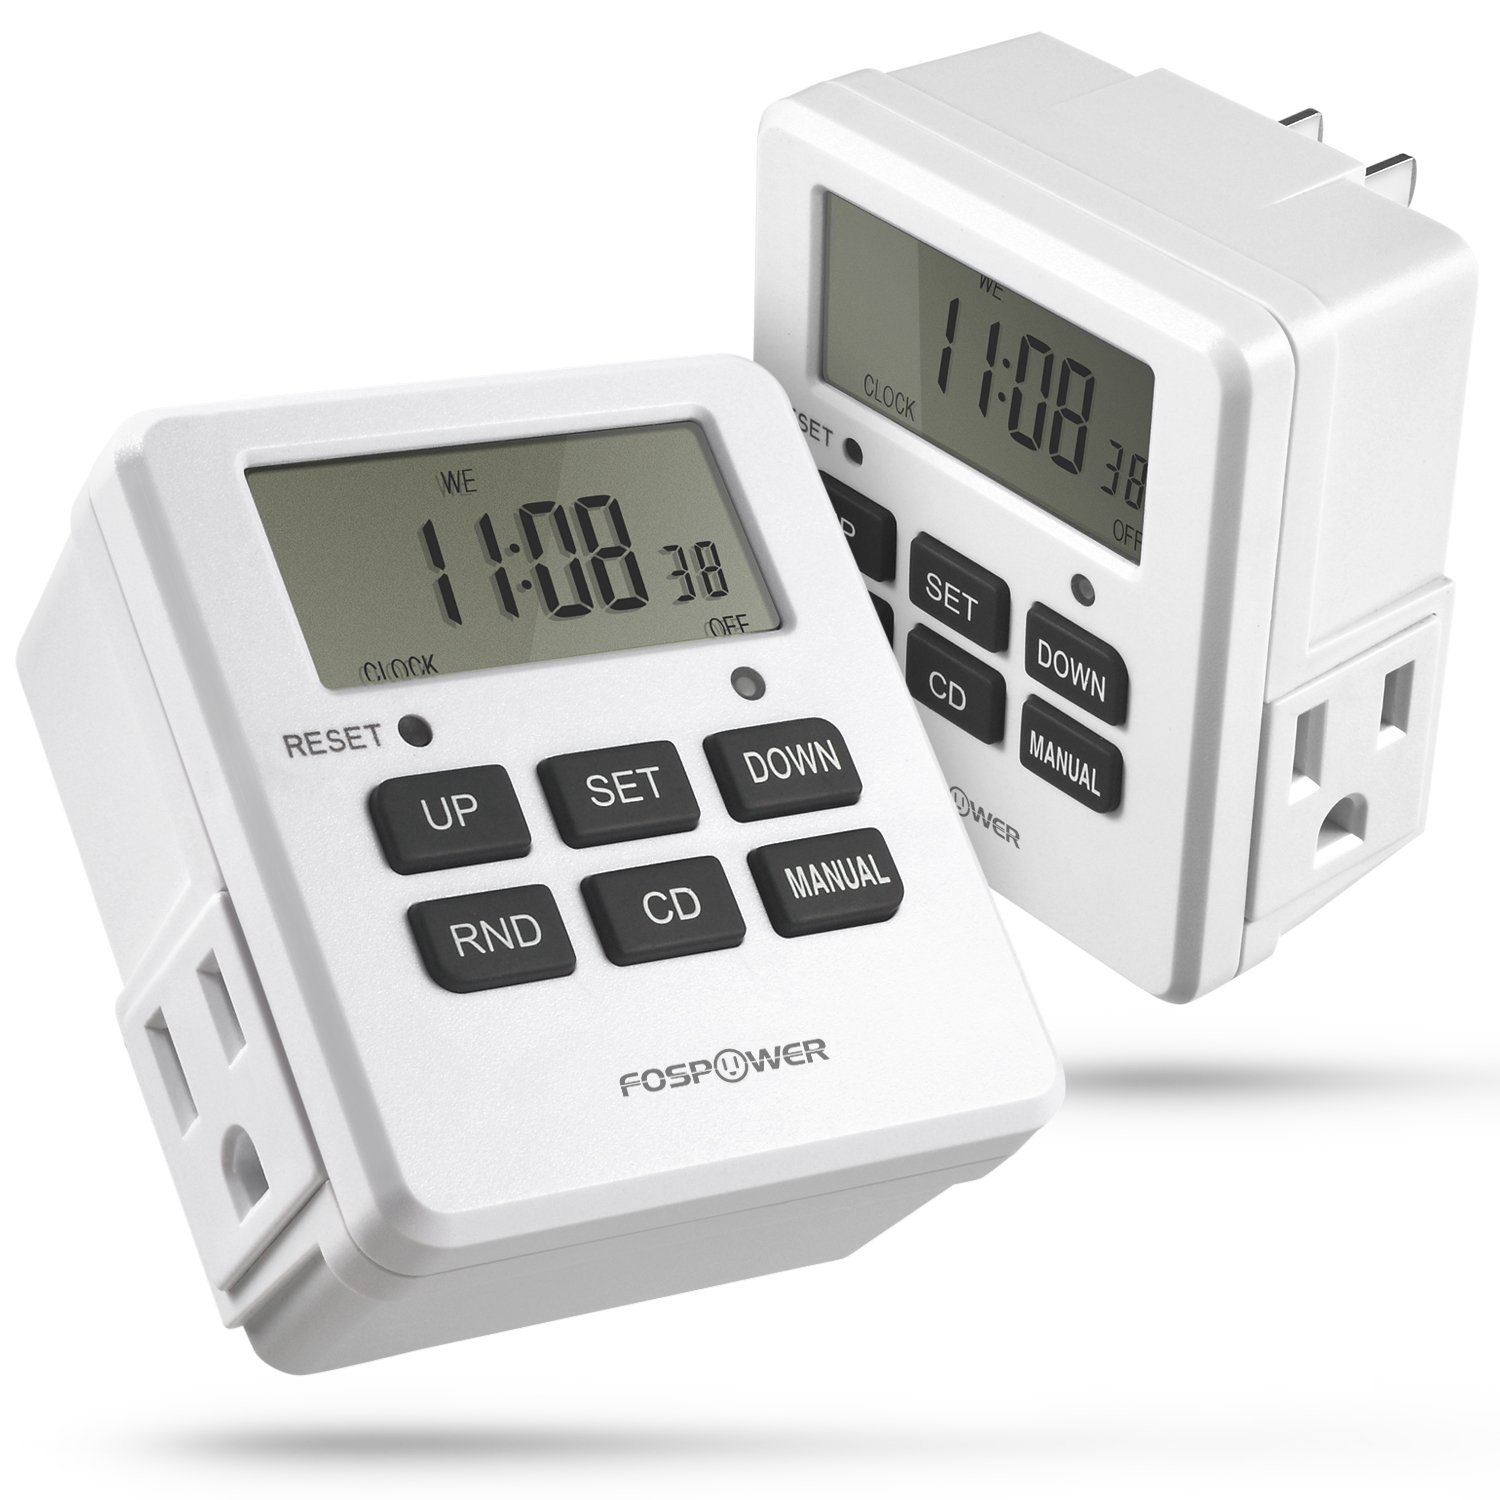 Digital Outlet Timer (2 Pack), FosPower [ETL Listed] Digital LCD Dual Outlet Programmable Timer, 7 Day Weekly Electrical Light Switch with 2 AC Plug 3-Prong Outlets - White